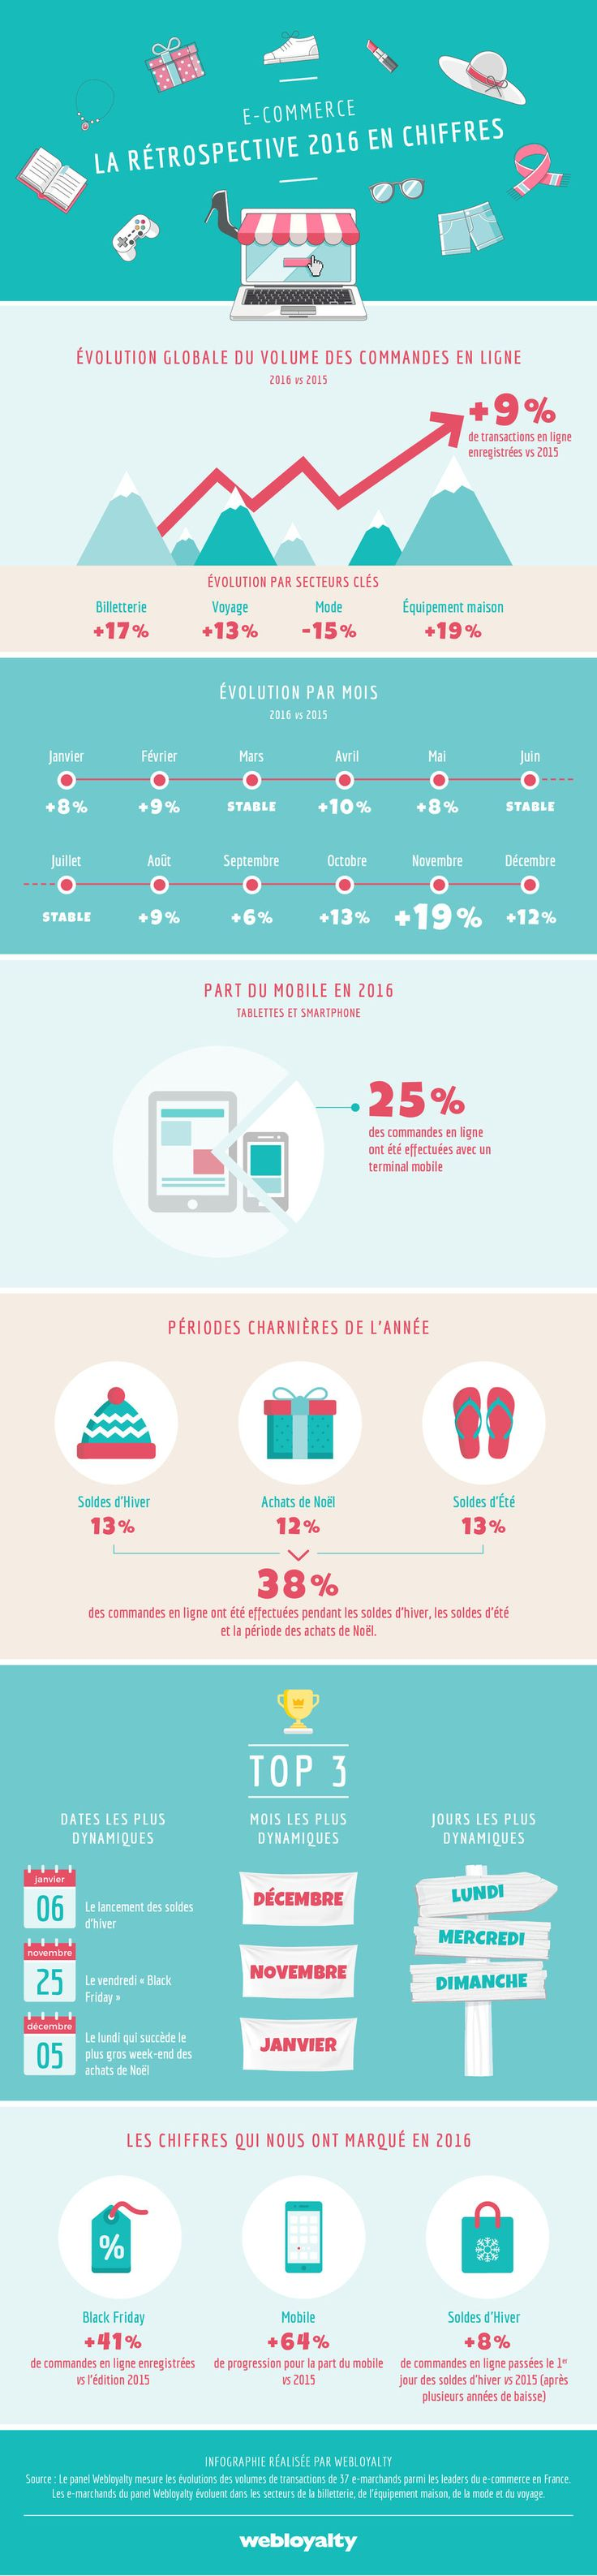 8 best Neuromarketing images on Pinterest | Board, Magic and News